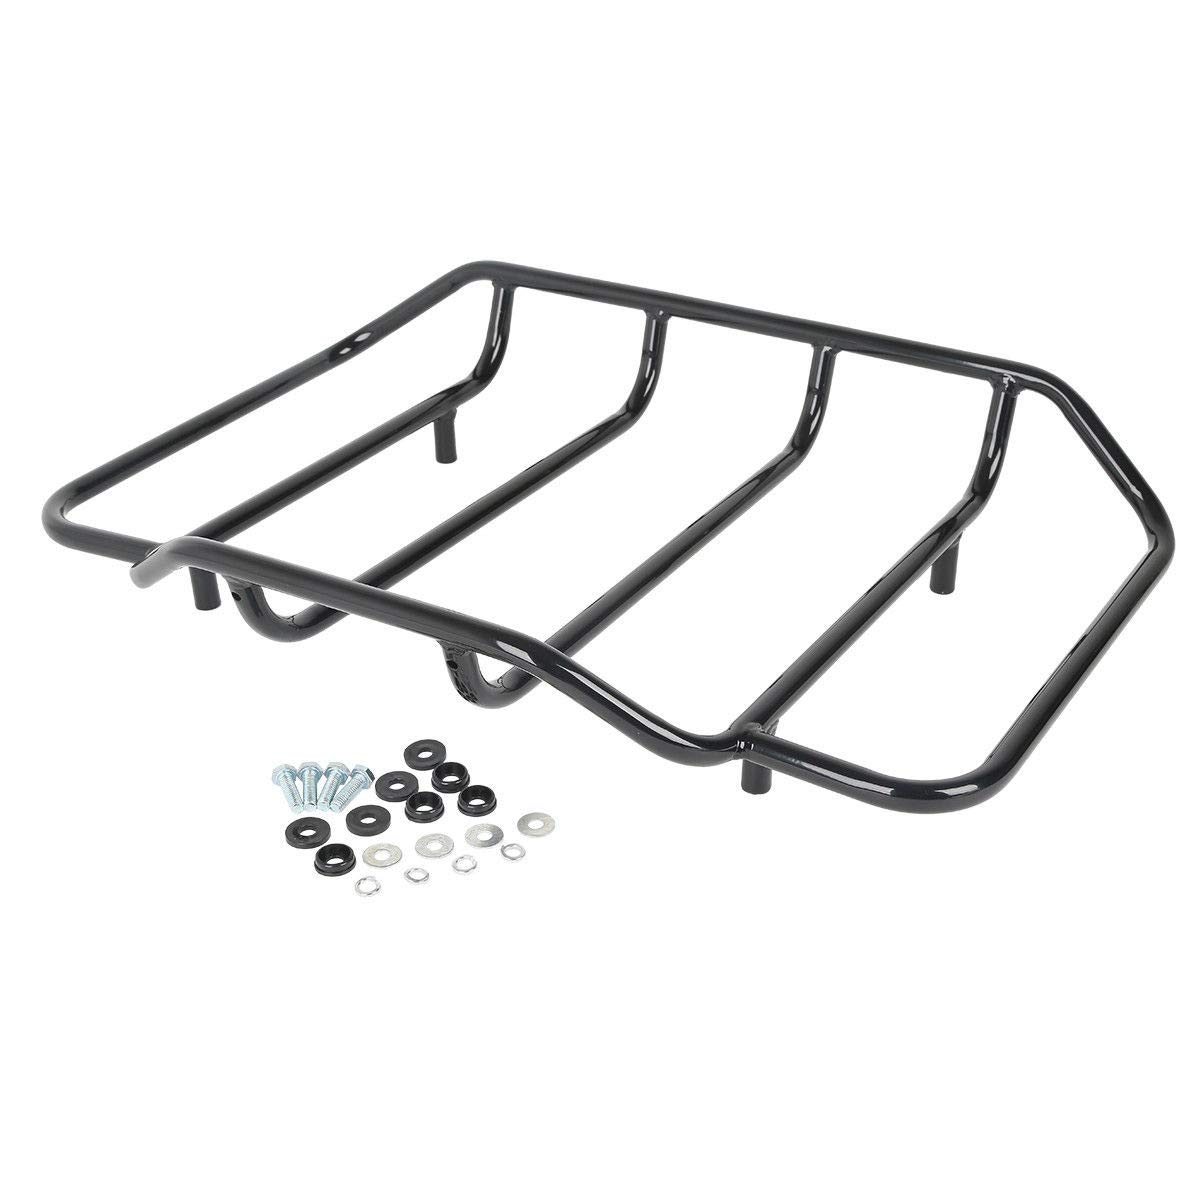 TCMT Black Tour Pack Luggage Rack Fits For Harley Touring Road King Street Glide Classic 1984-2020 by TCMT